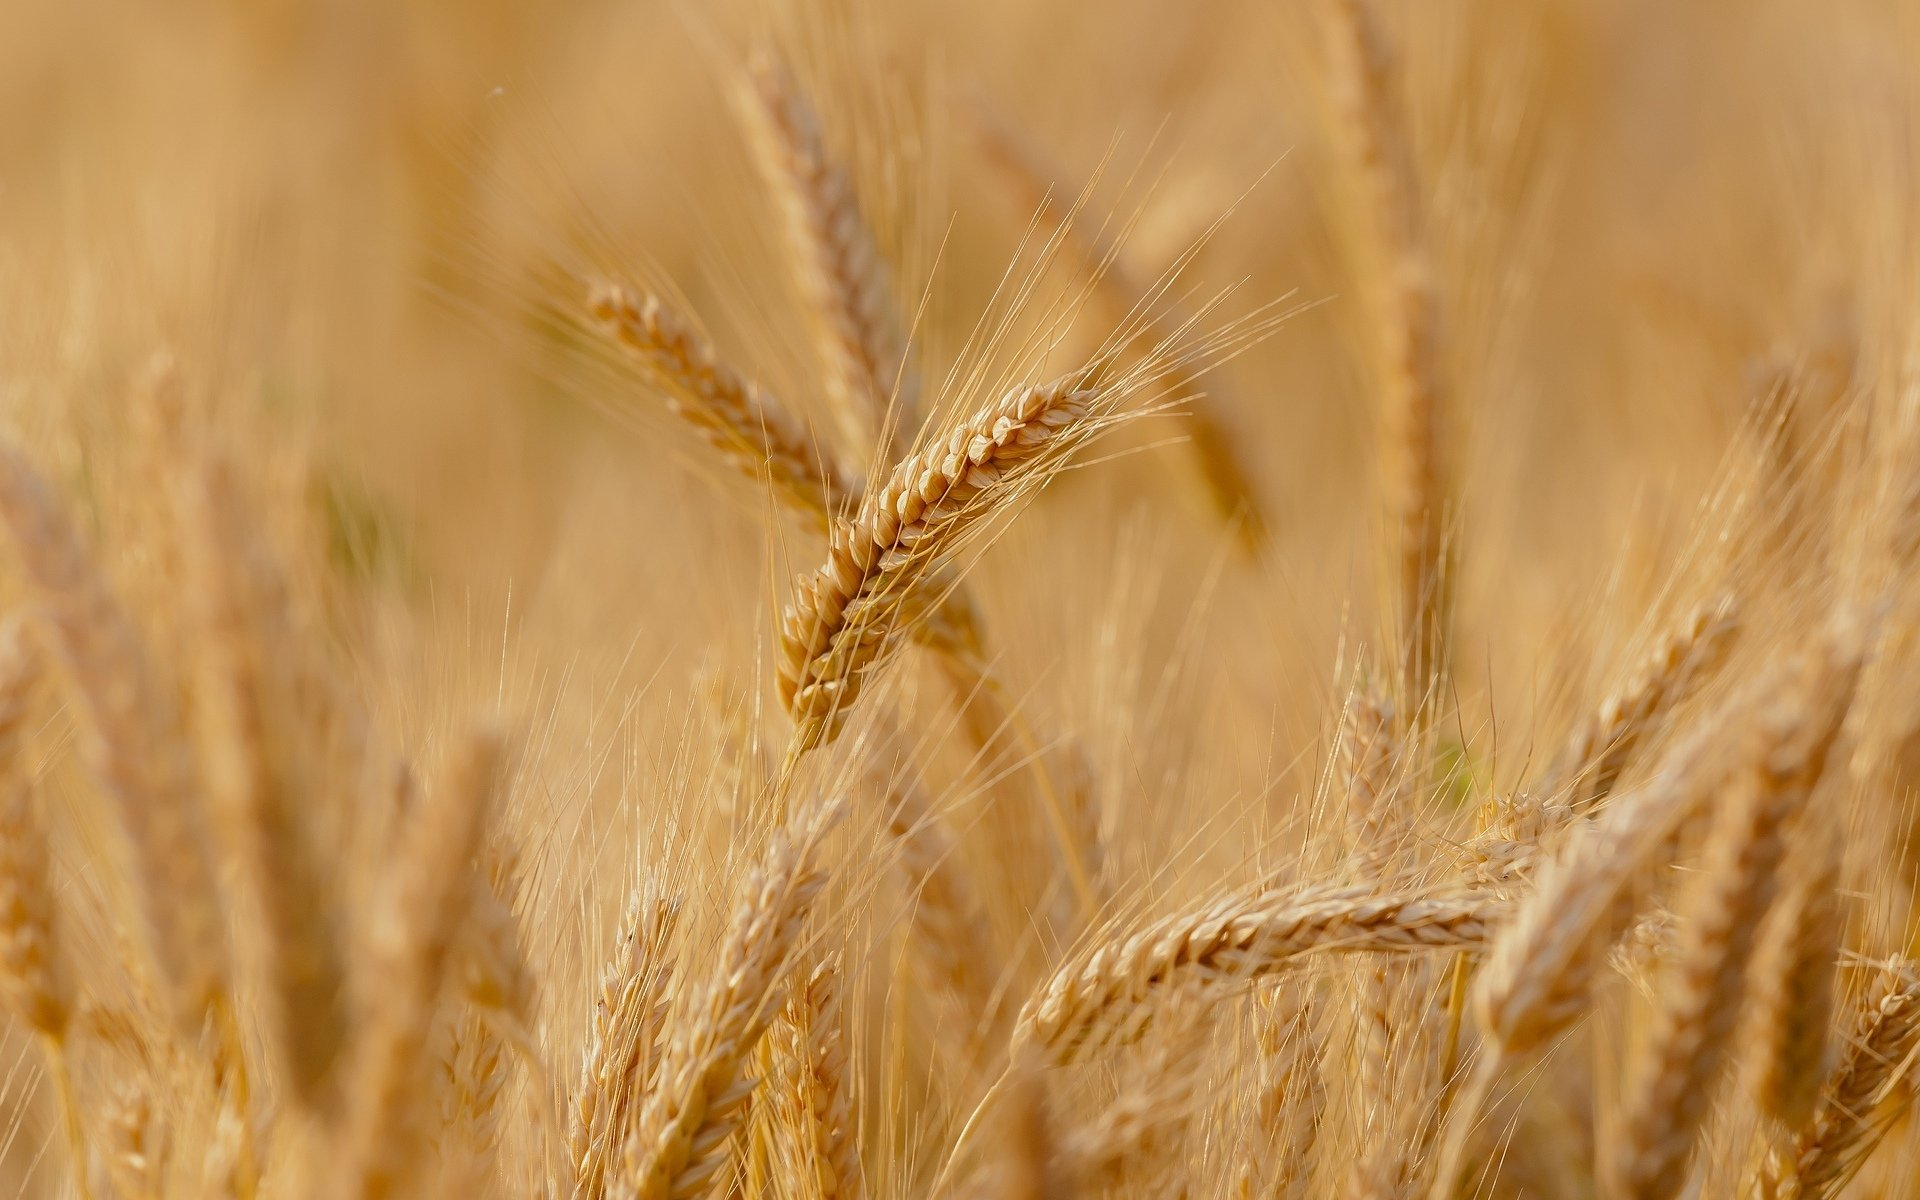 close-up-wheat-rye-the-field-ears-spikes-spike-background-wallpaper-widescreen-full-screen-widescreen-hd-wallpapers-background-wallpaper-widescreen-fullscreen-widescreen